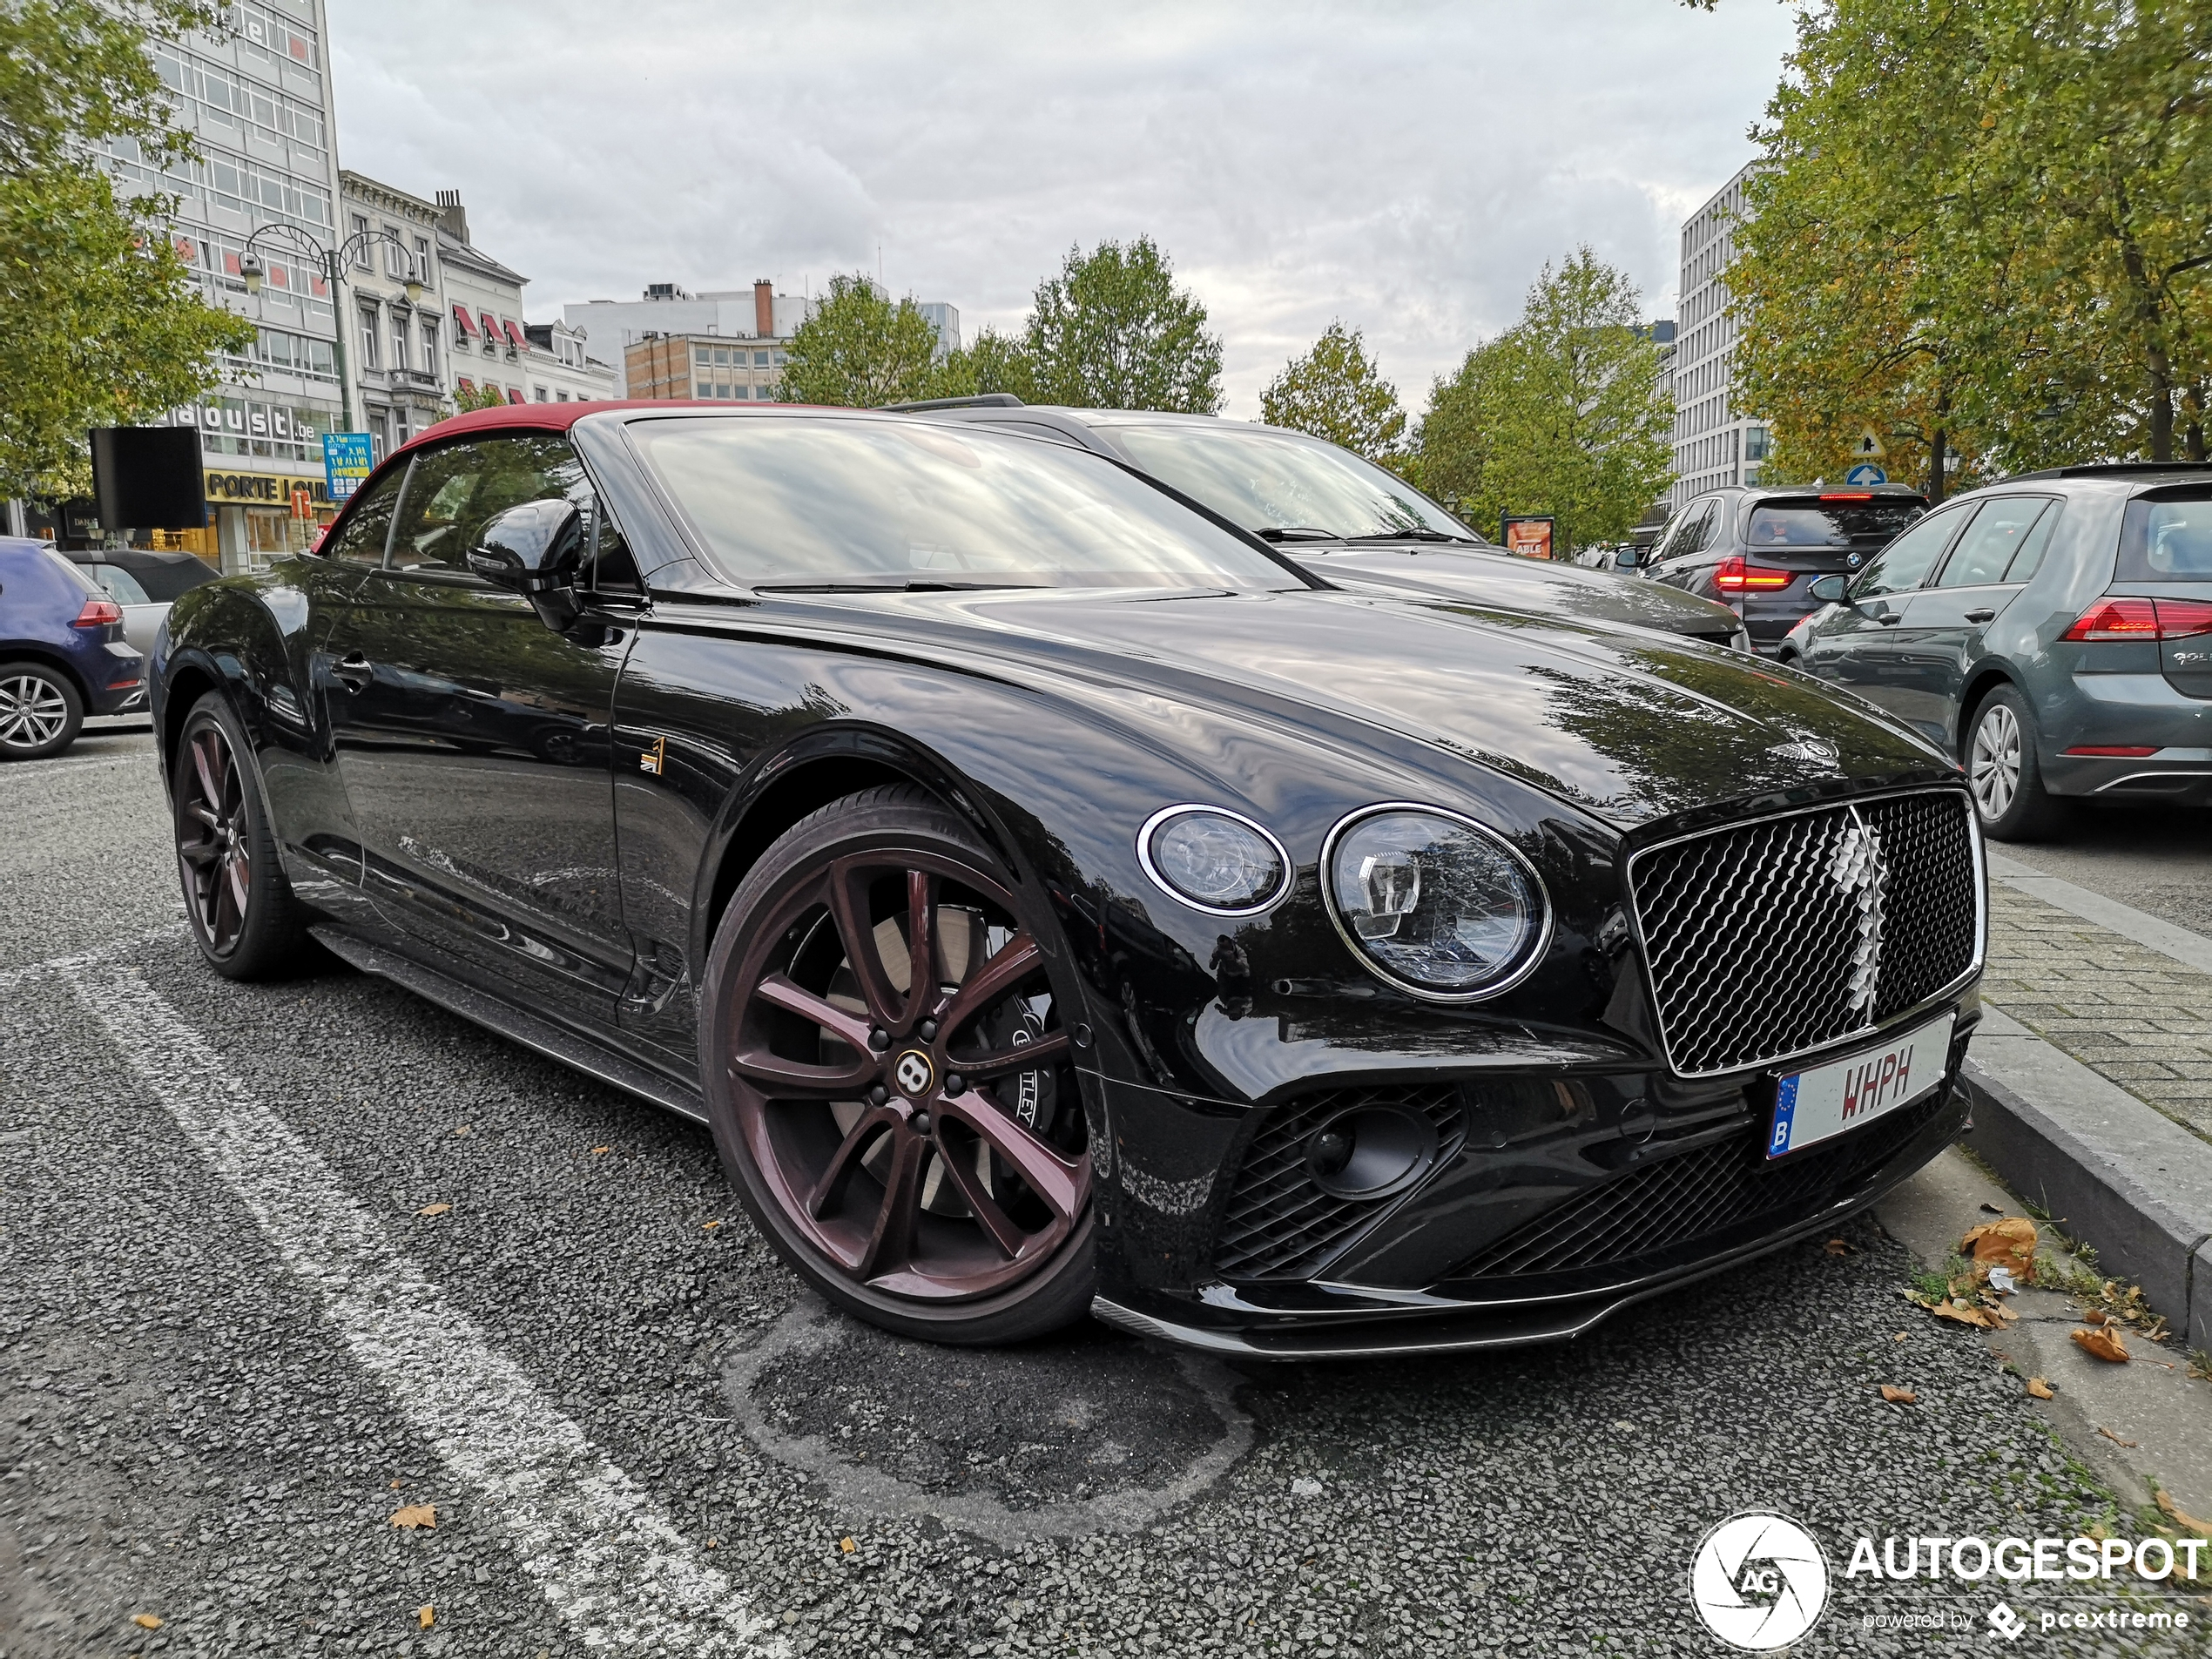 Bentley Continental GTC 2018 Number 1 Edition